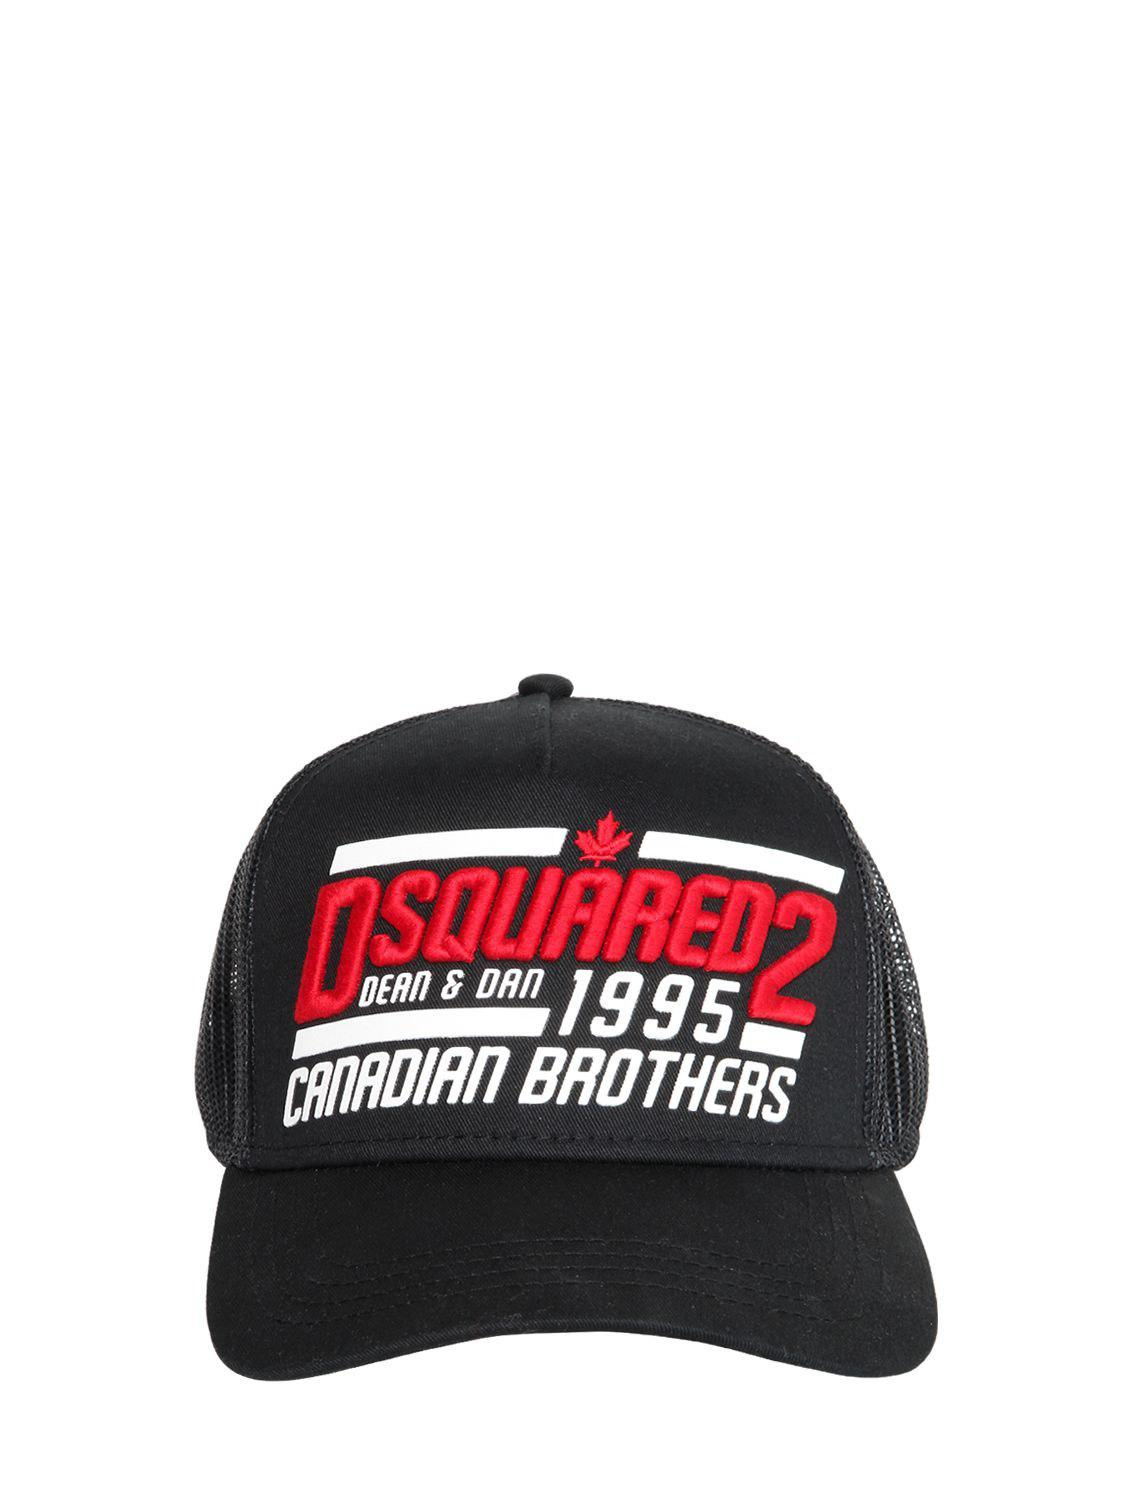 Dsquared² 1995 Brothers Canvas   Mesh Trucker Hat in Black for Men ... 91ab73a1554c